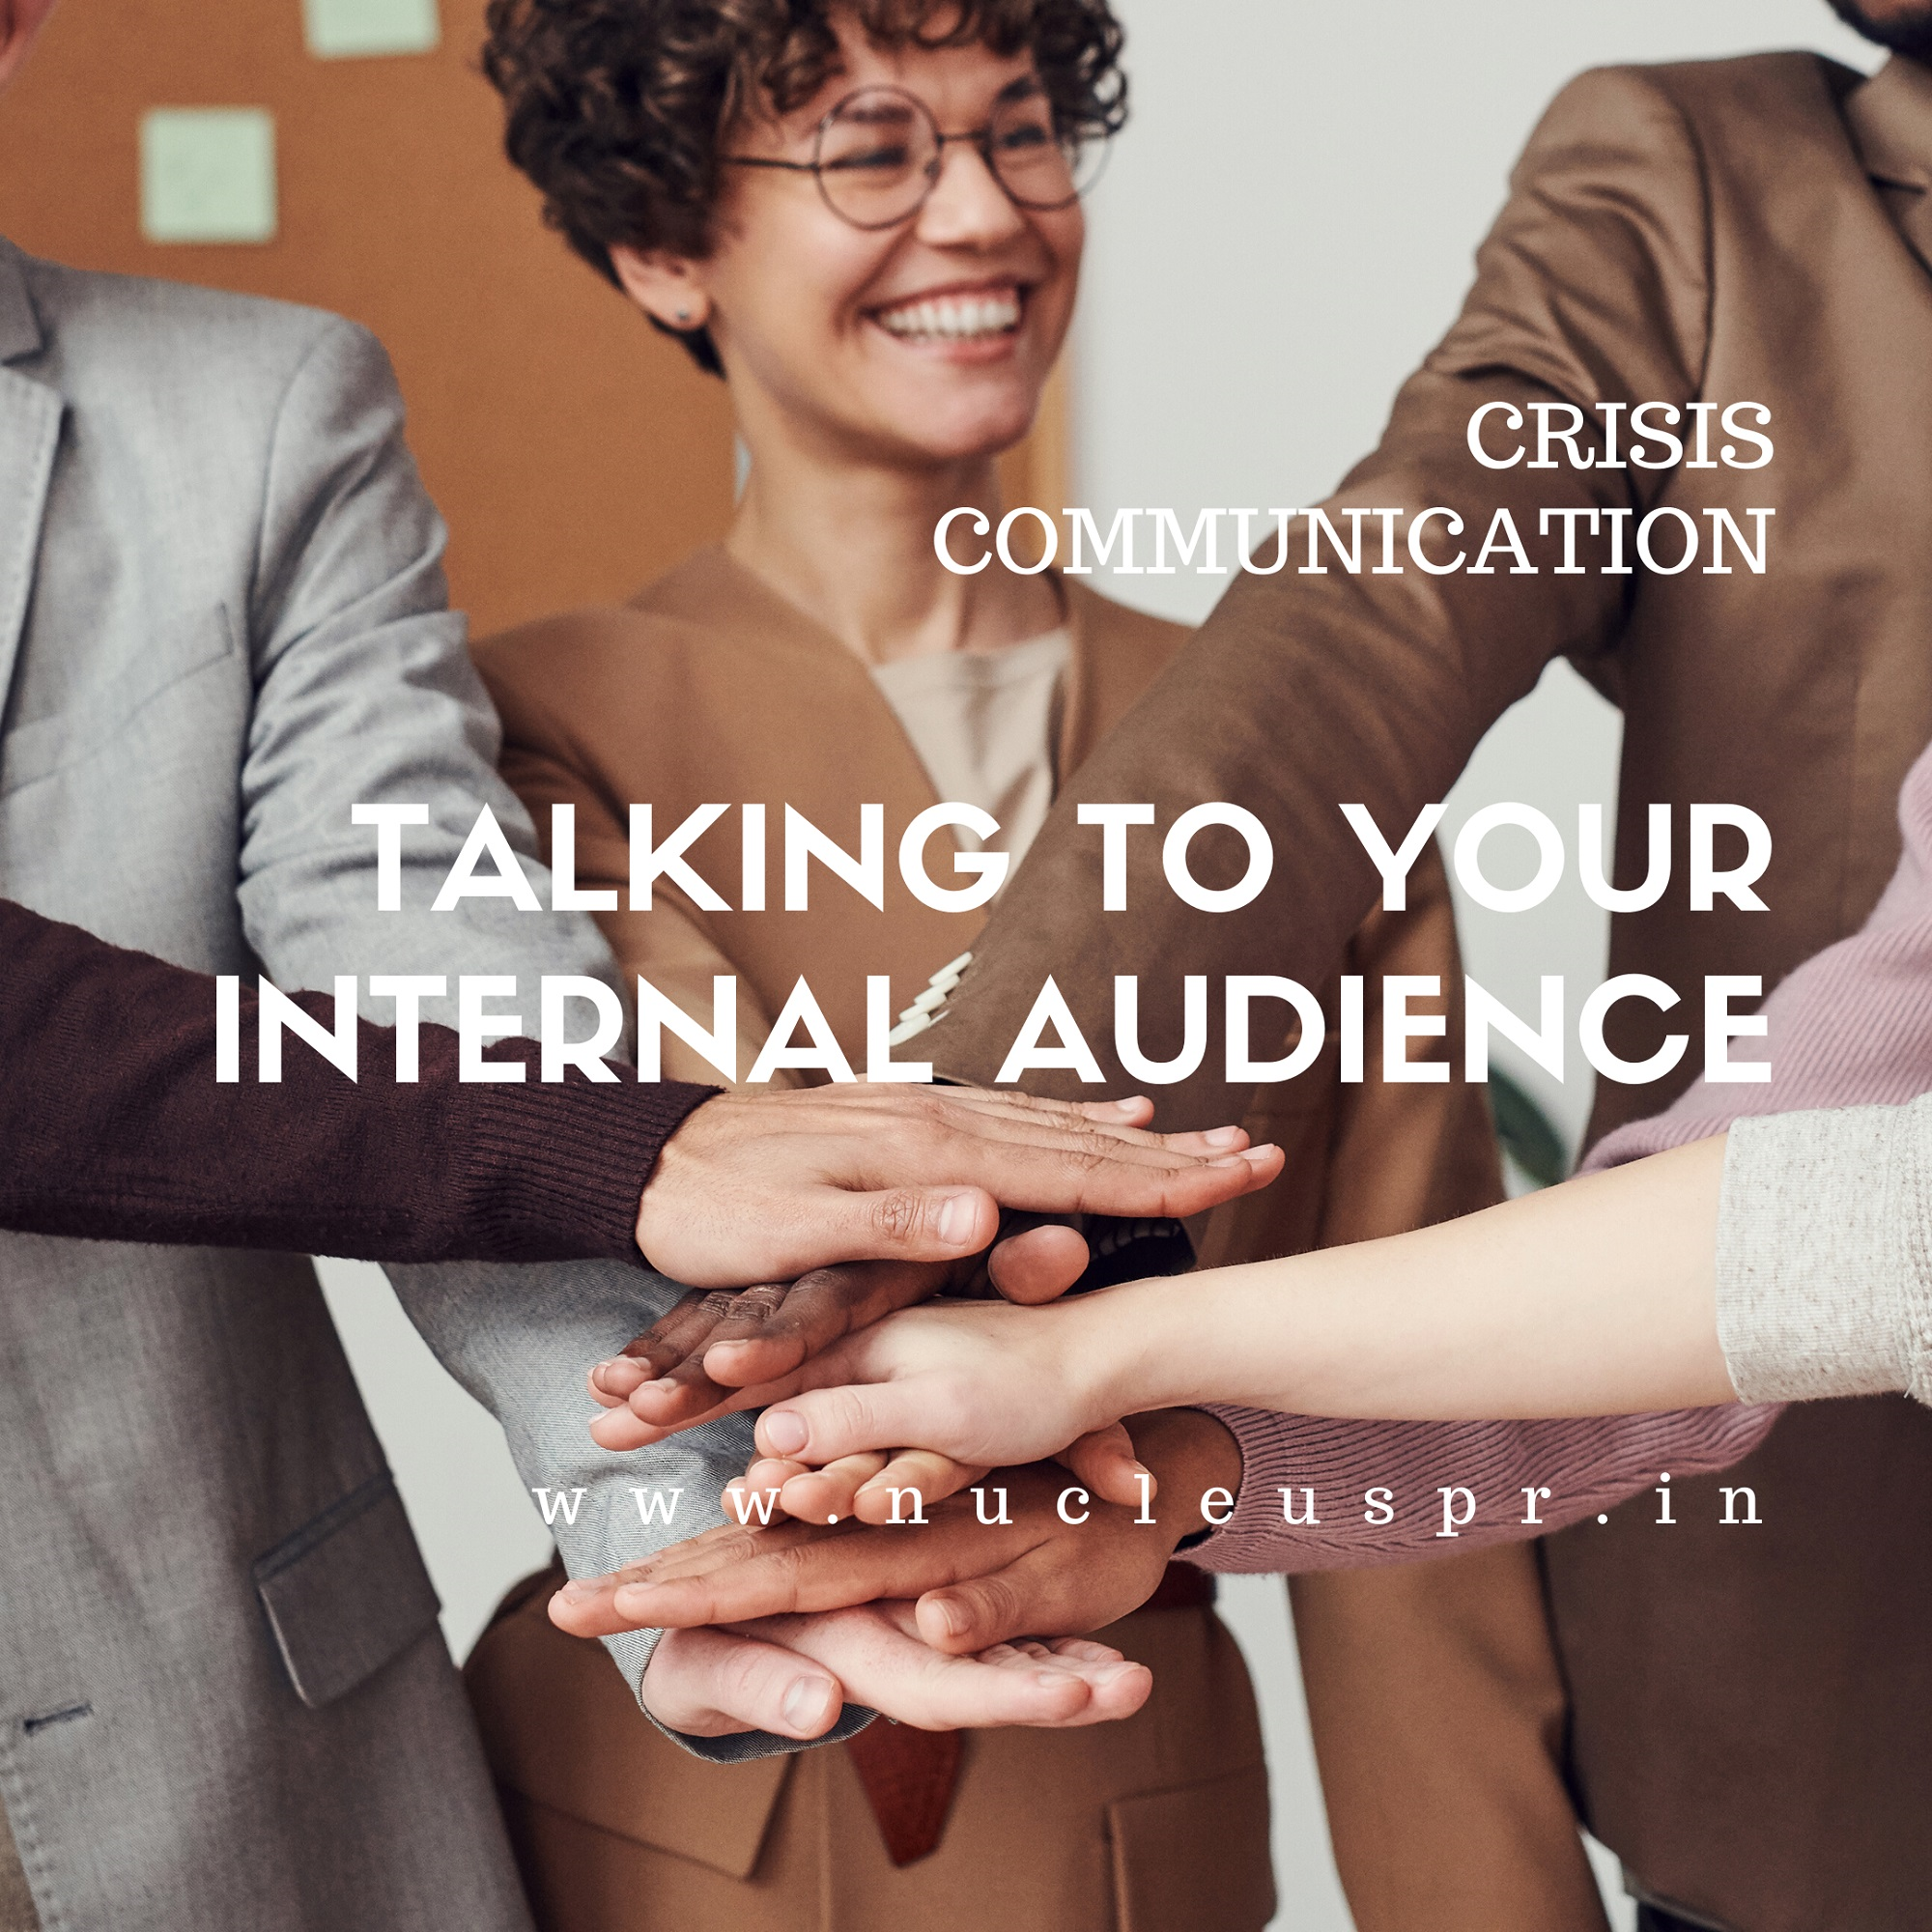 Crisis Communications: Managing the Internal Team